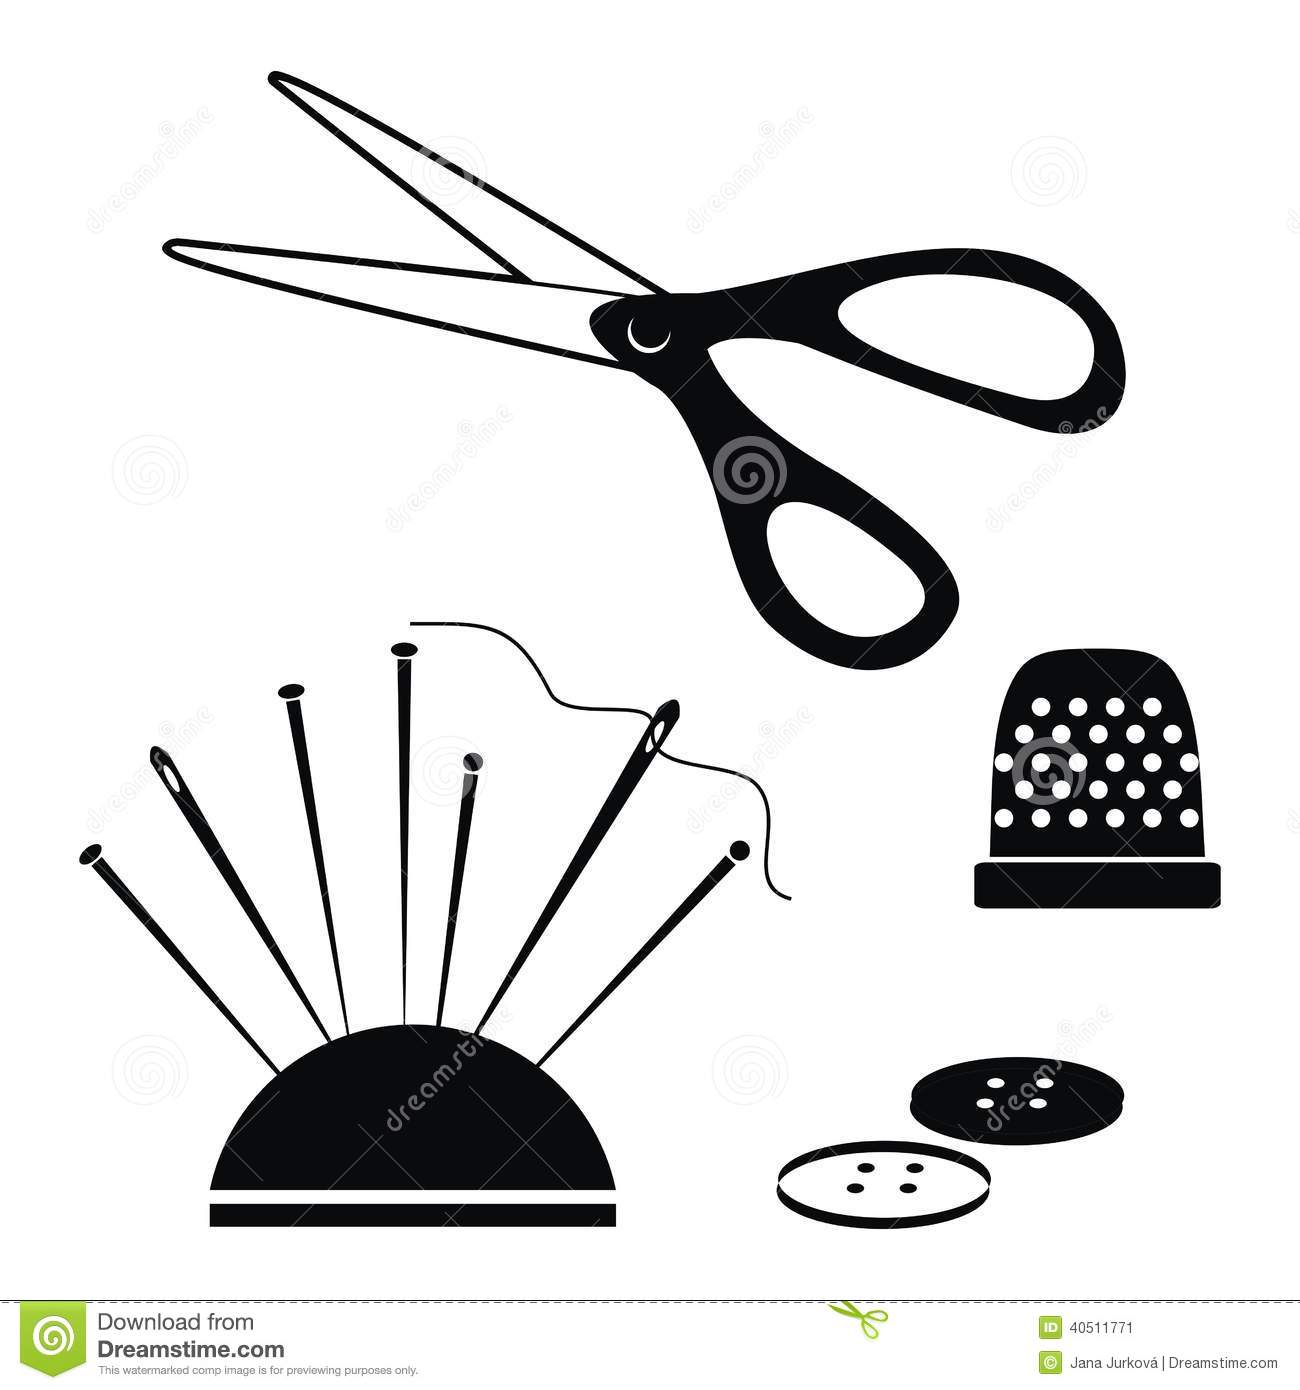 Sewing Supplies Stock Vector Illustration Of Black